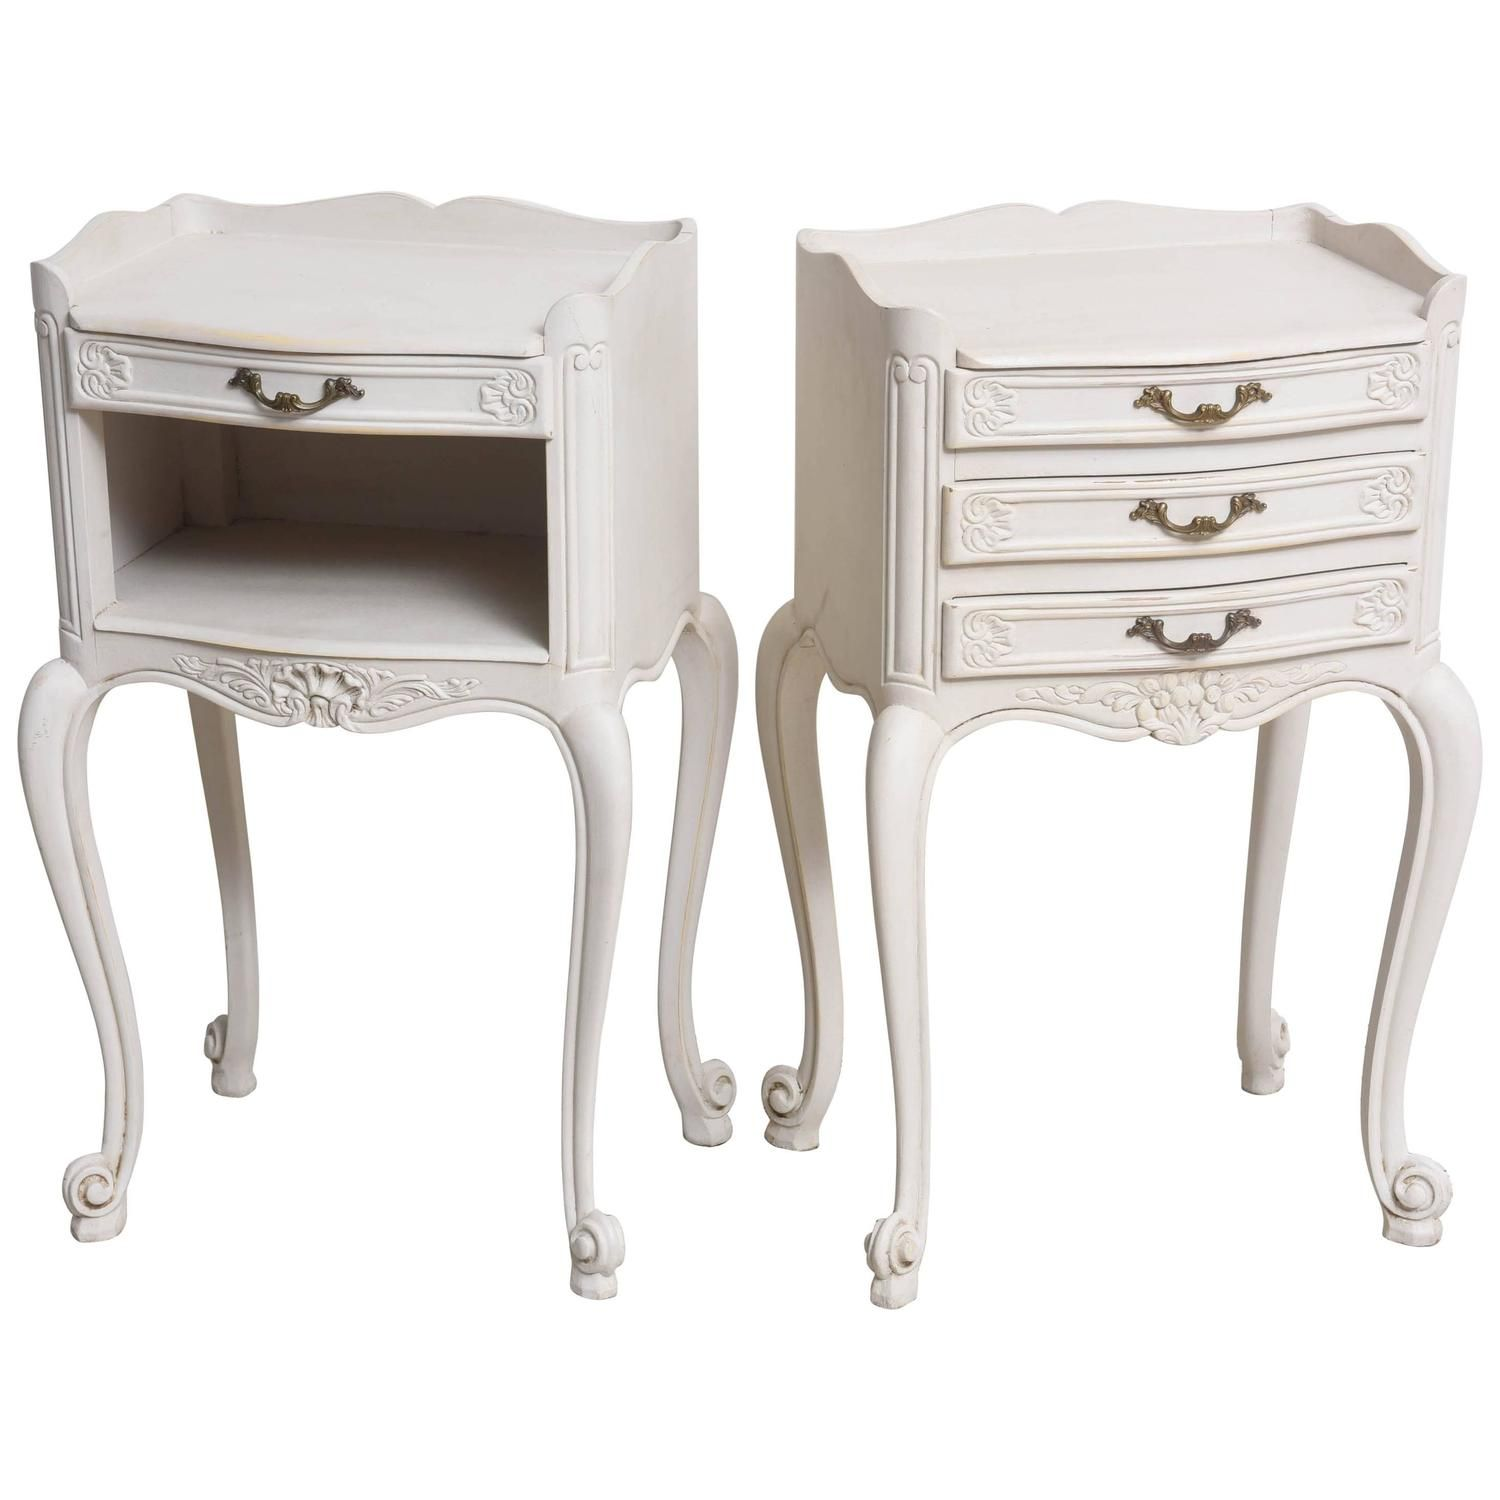 Pair Of Painted Louis Xv Style Bedside Cabinets France Circa